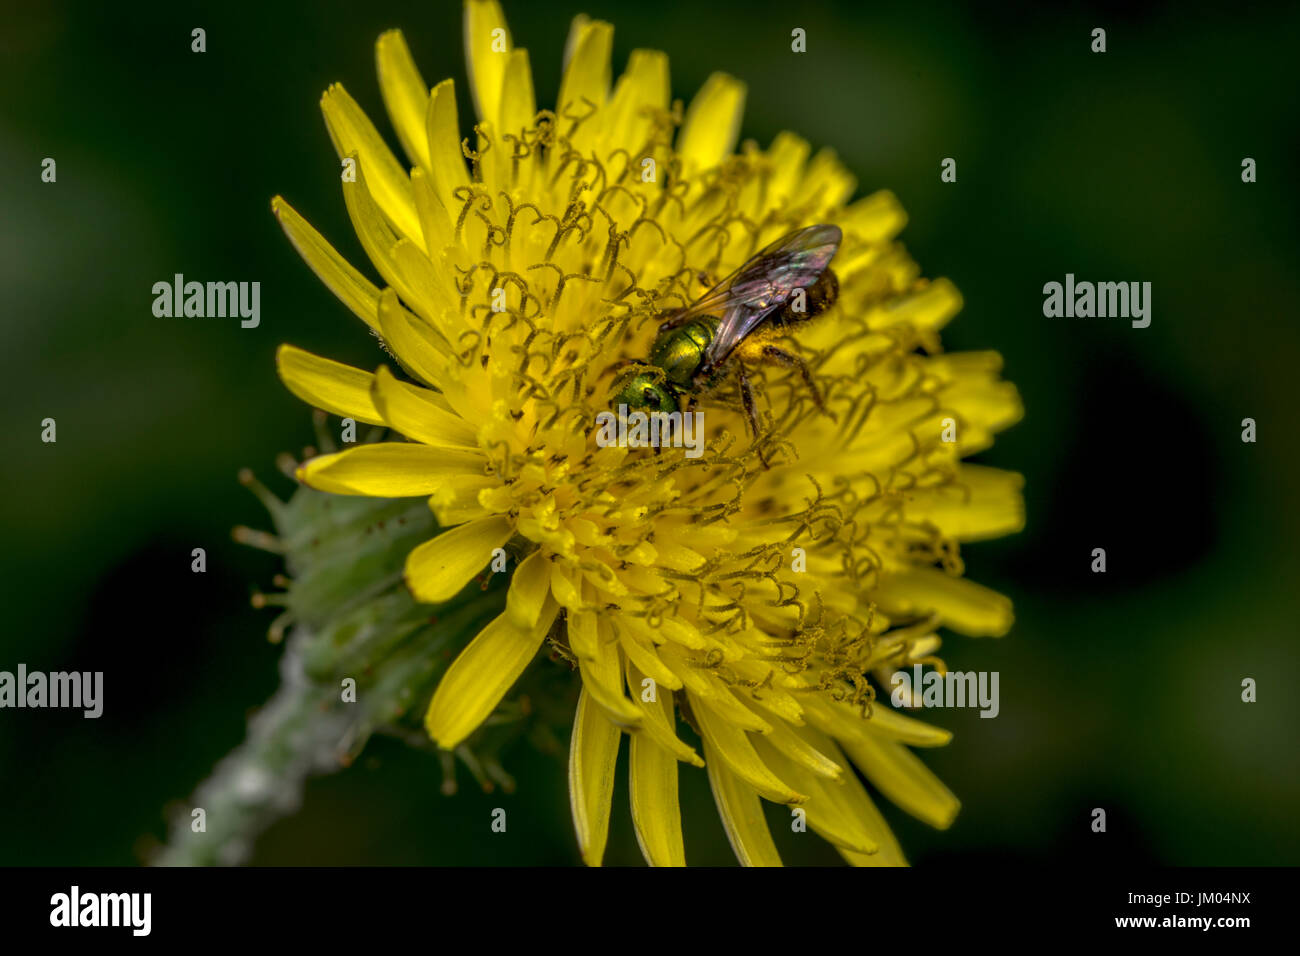 Agapostemon sweat bee pollinating a yellow flower - Stock Image